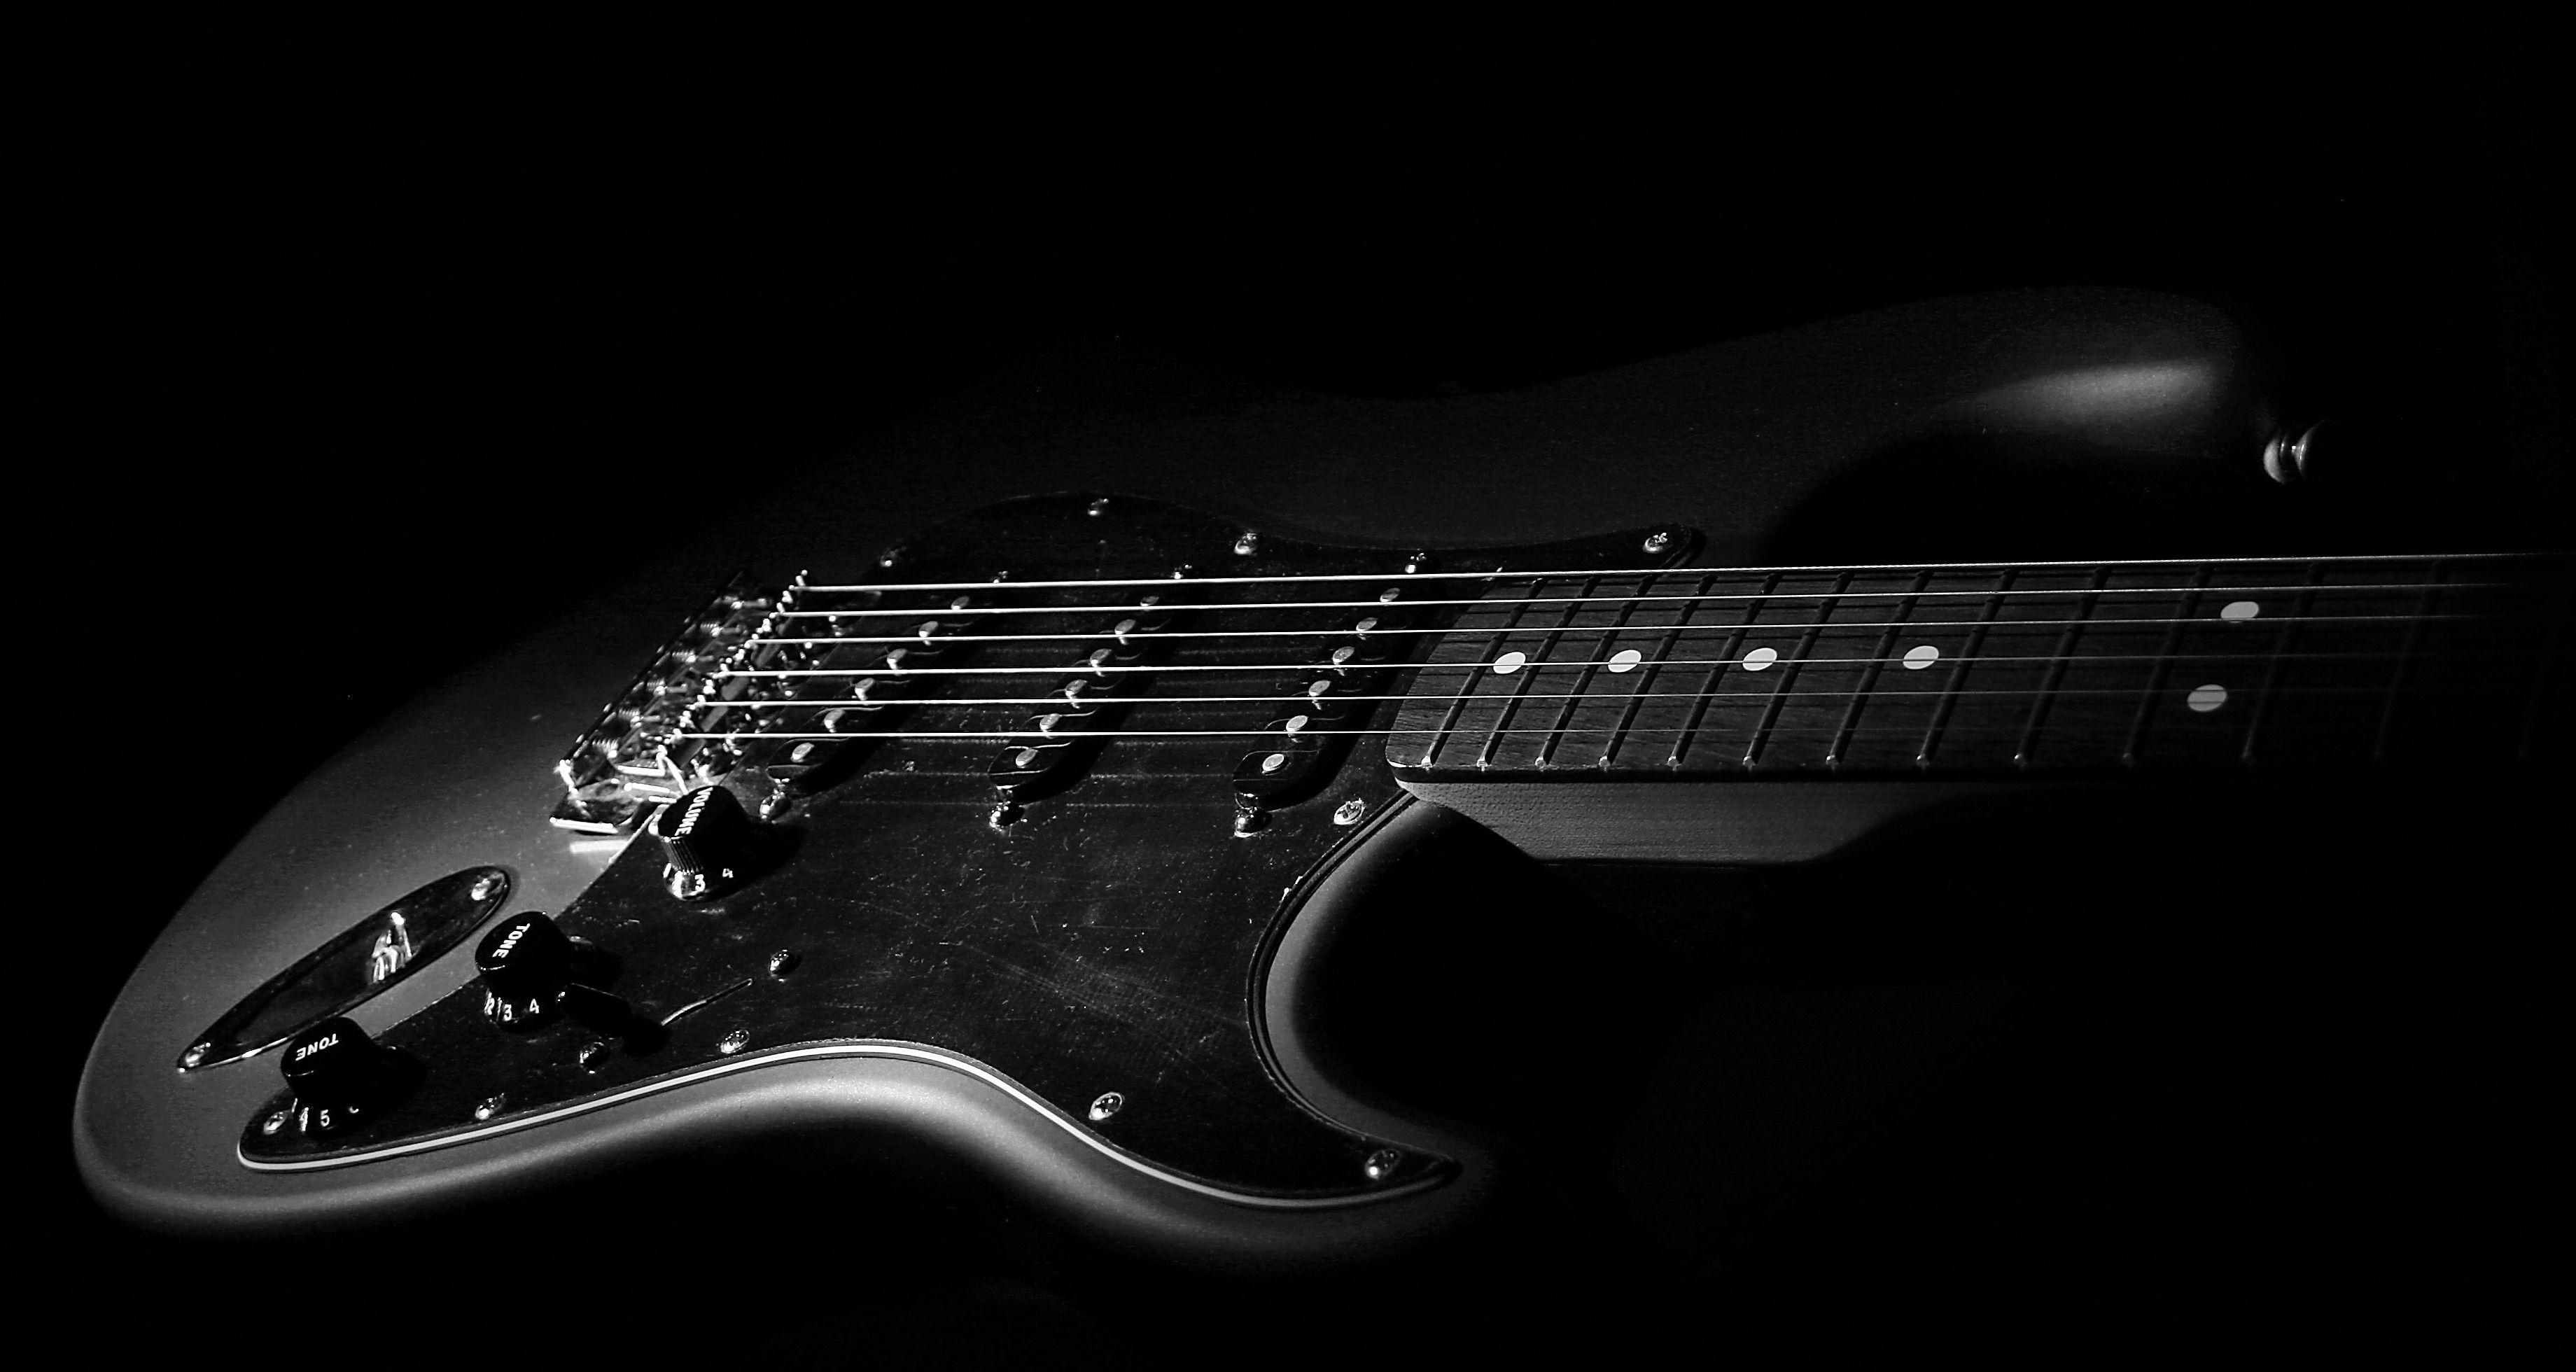 Fender Stratocaster Wallpapers 3680x1960